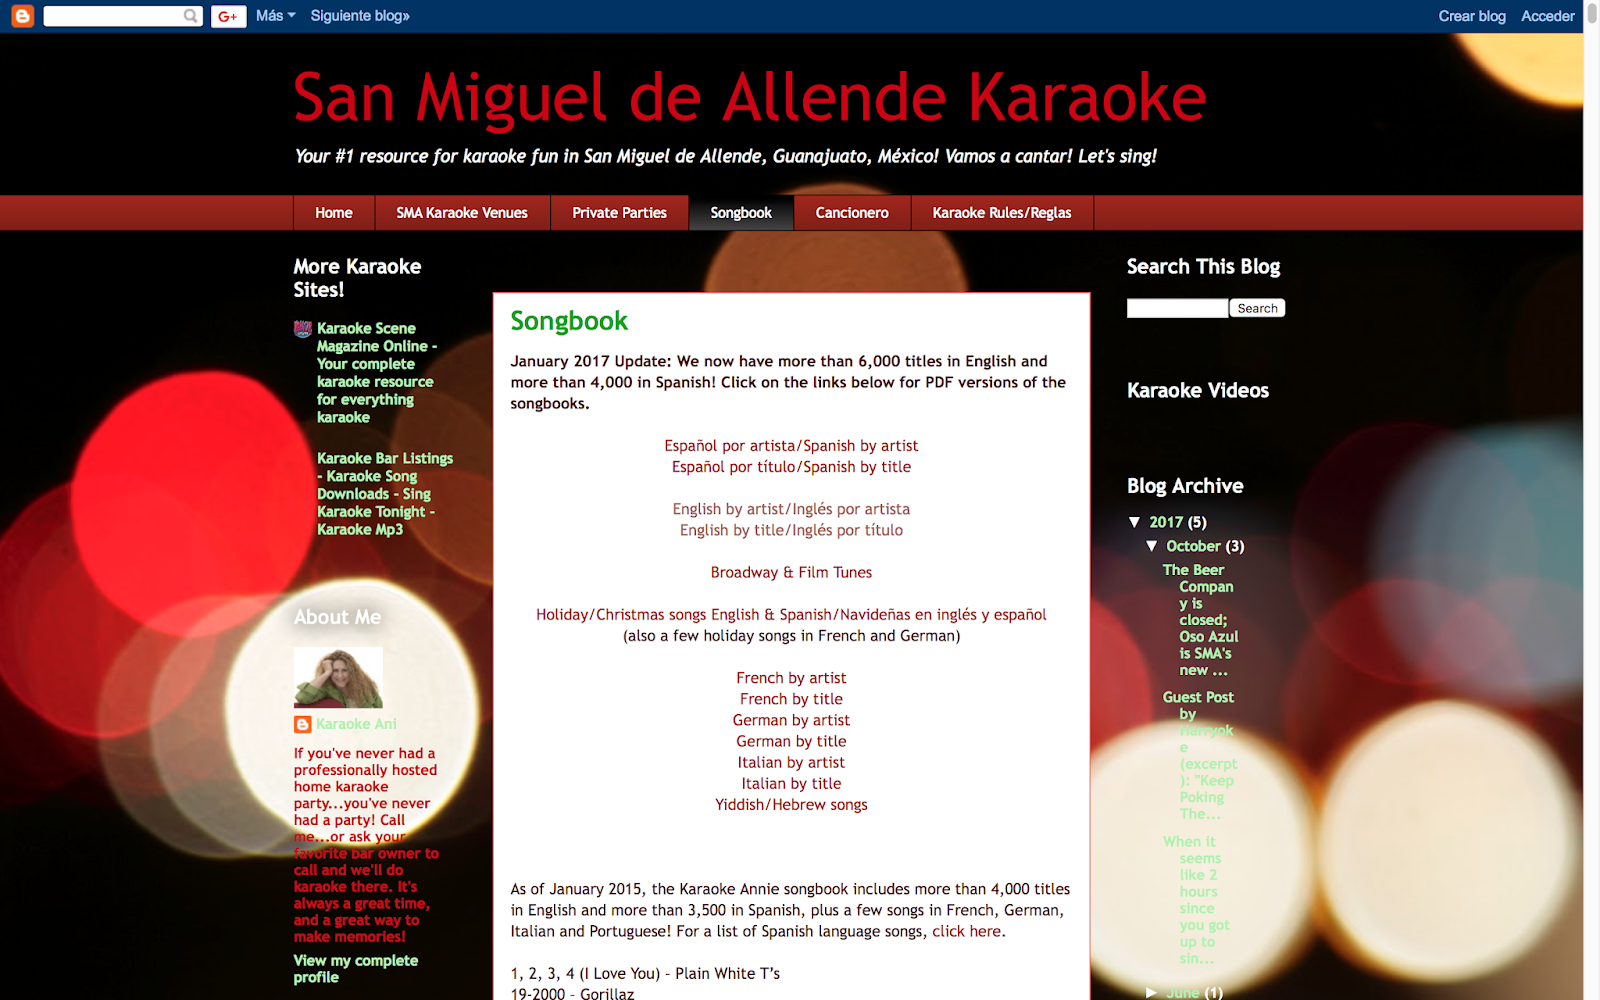 San Miguel de Allende Karaoke: New songbook PDFs available